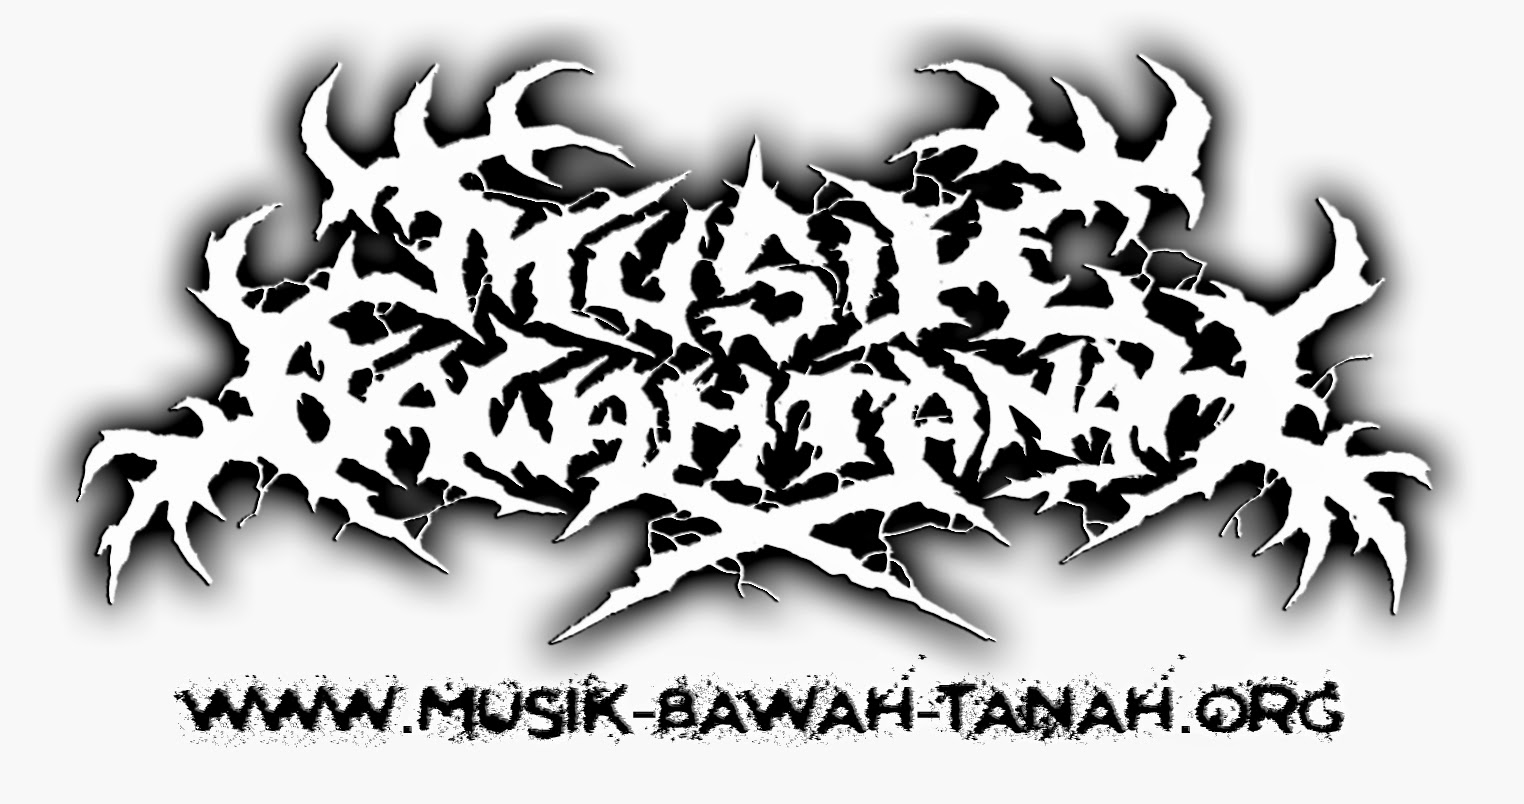 Musik Bawah Tanah | Black Metal | Grindcore | Screamo | Death Metal | Punk Rock | Hardcore | Metalcore | Gothic Metal | Deathcore | Artwork 5